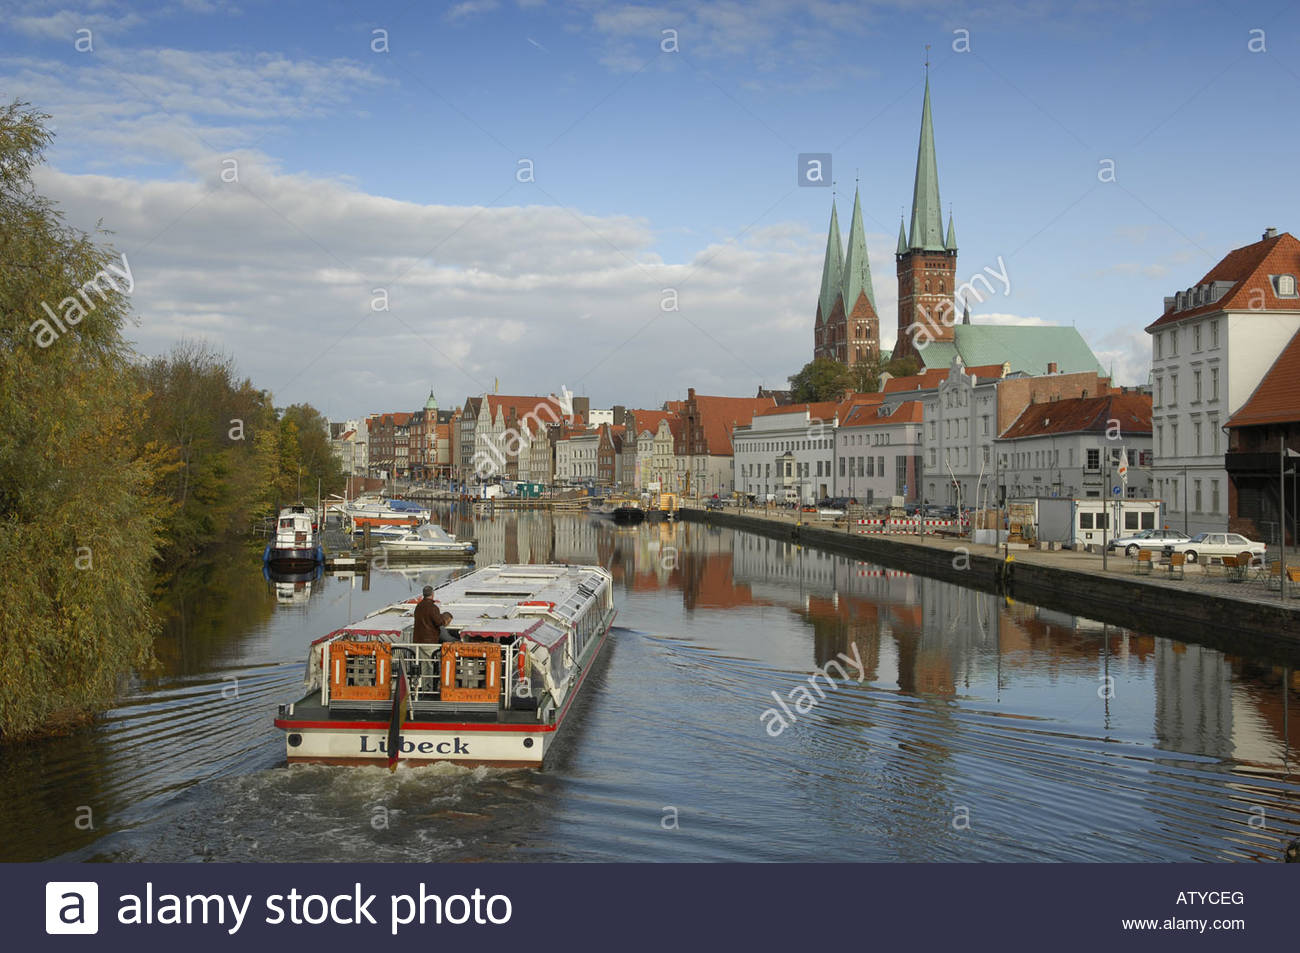 Boats in the canal with buildings in the background, Tyskland, Germany - Stock Image